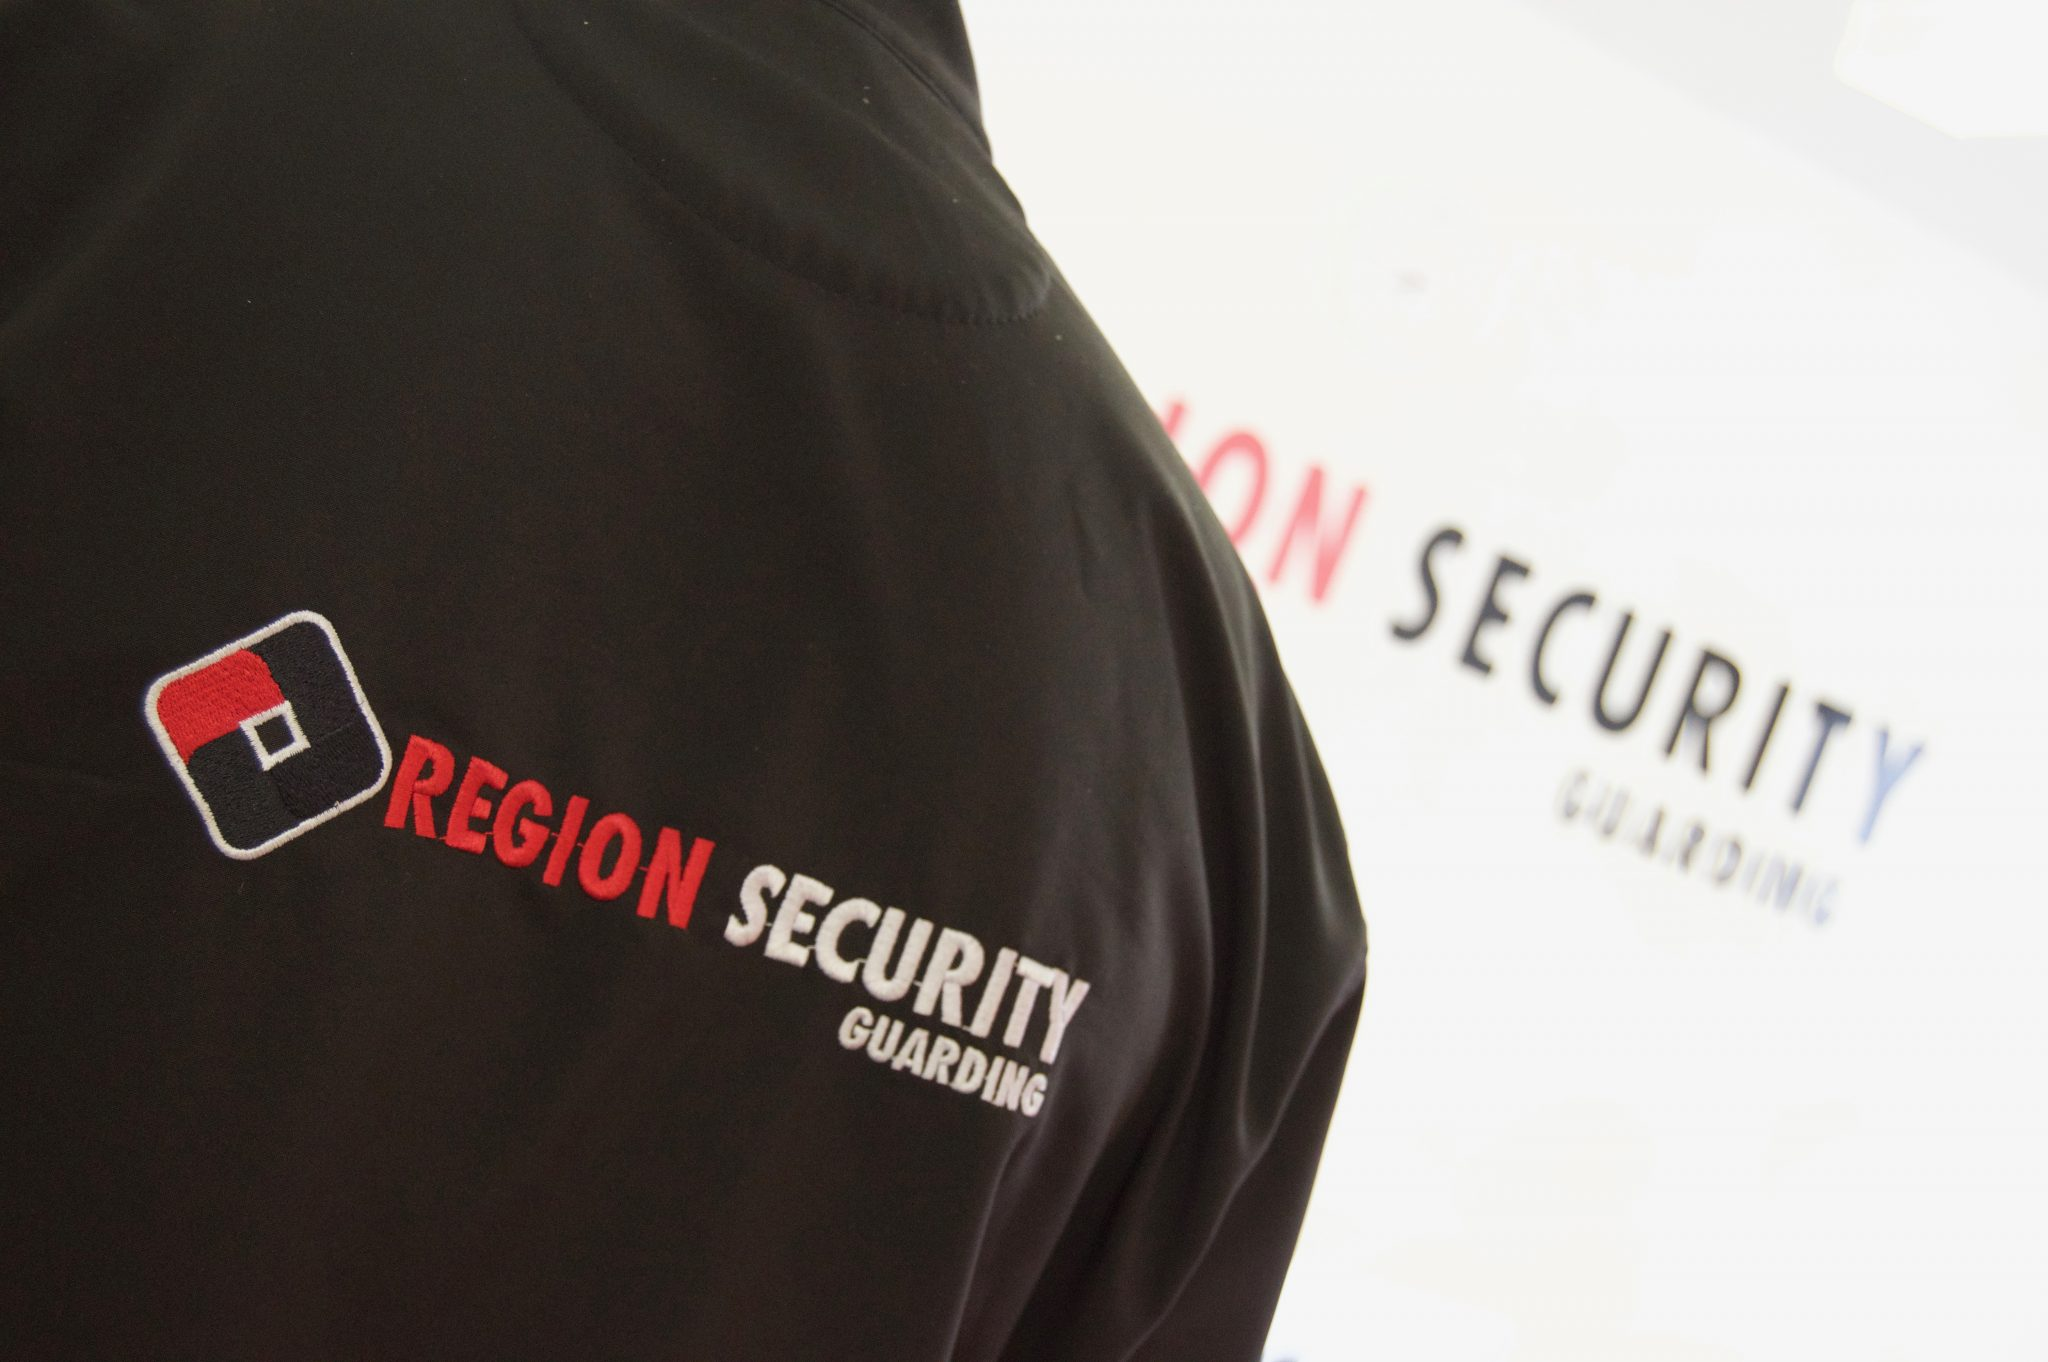 Milton Keynes Security Company